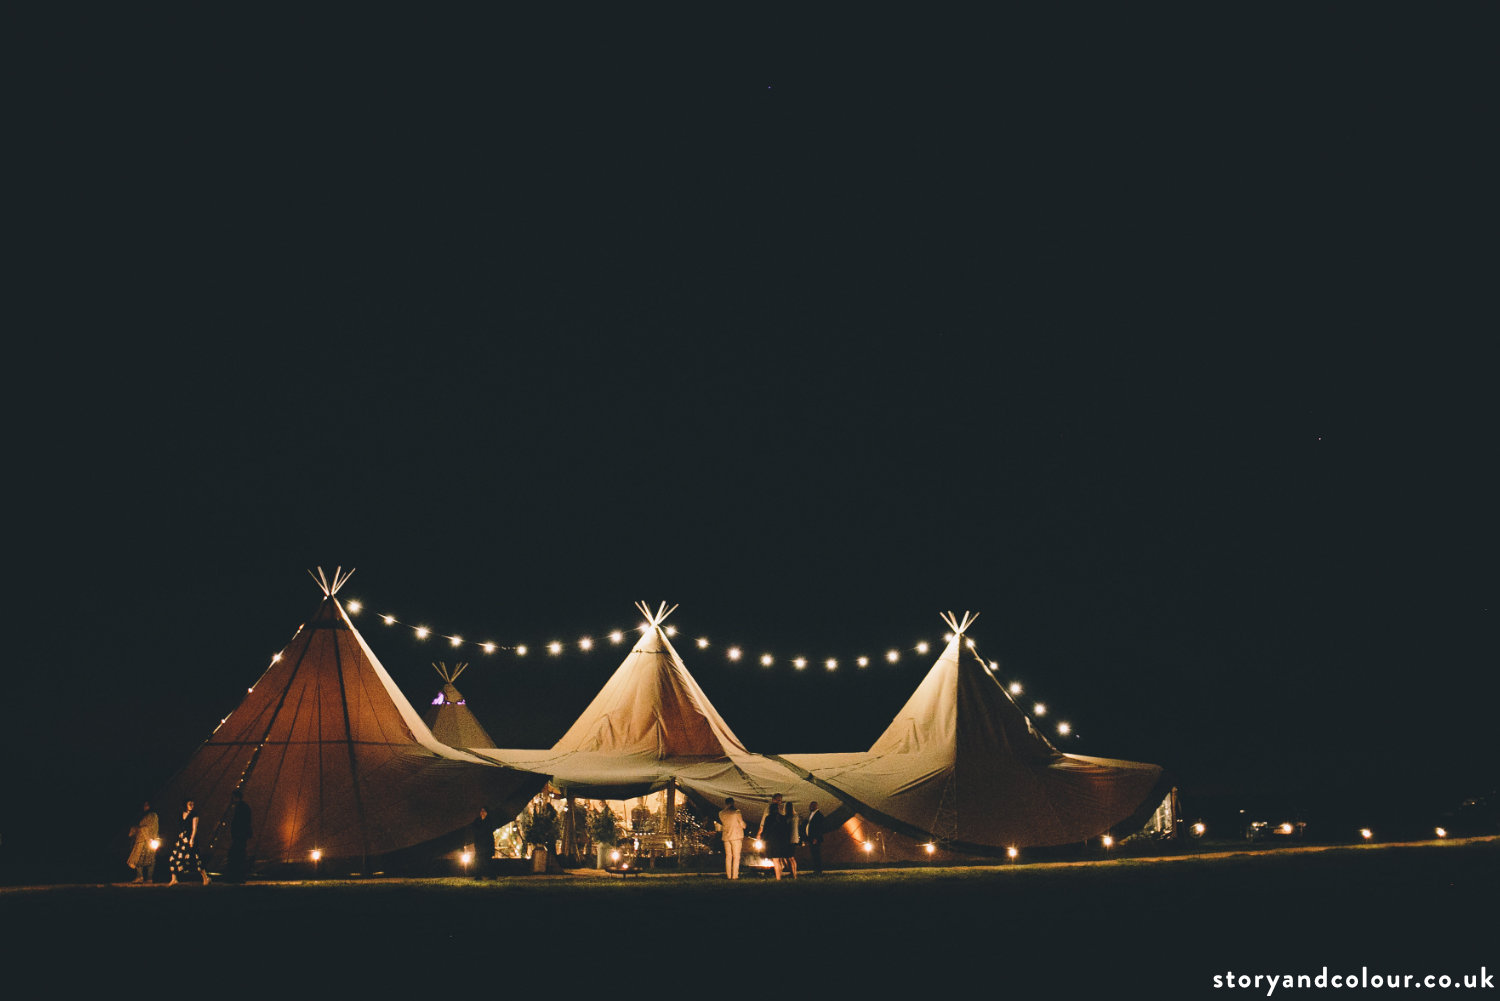 Bath_wedding_teepee.jpg